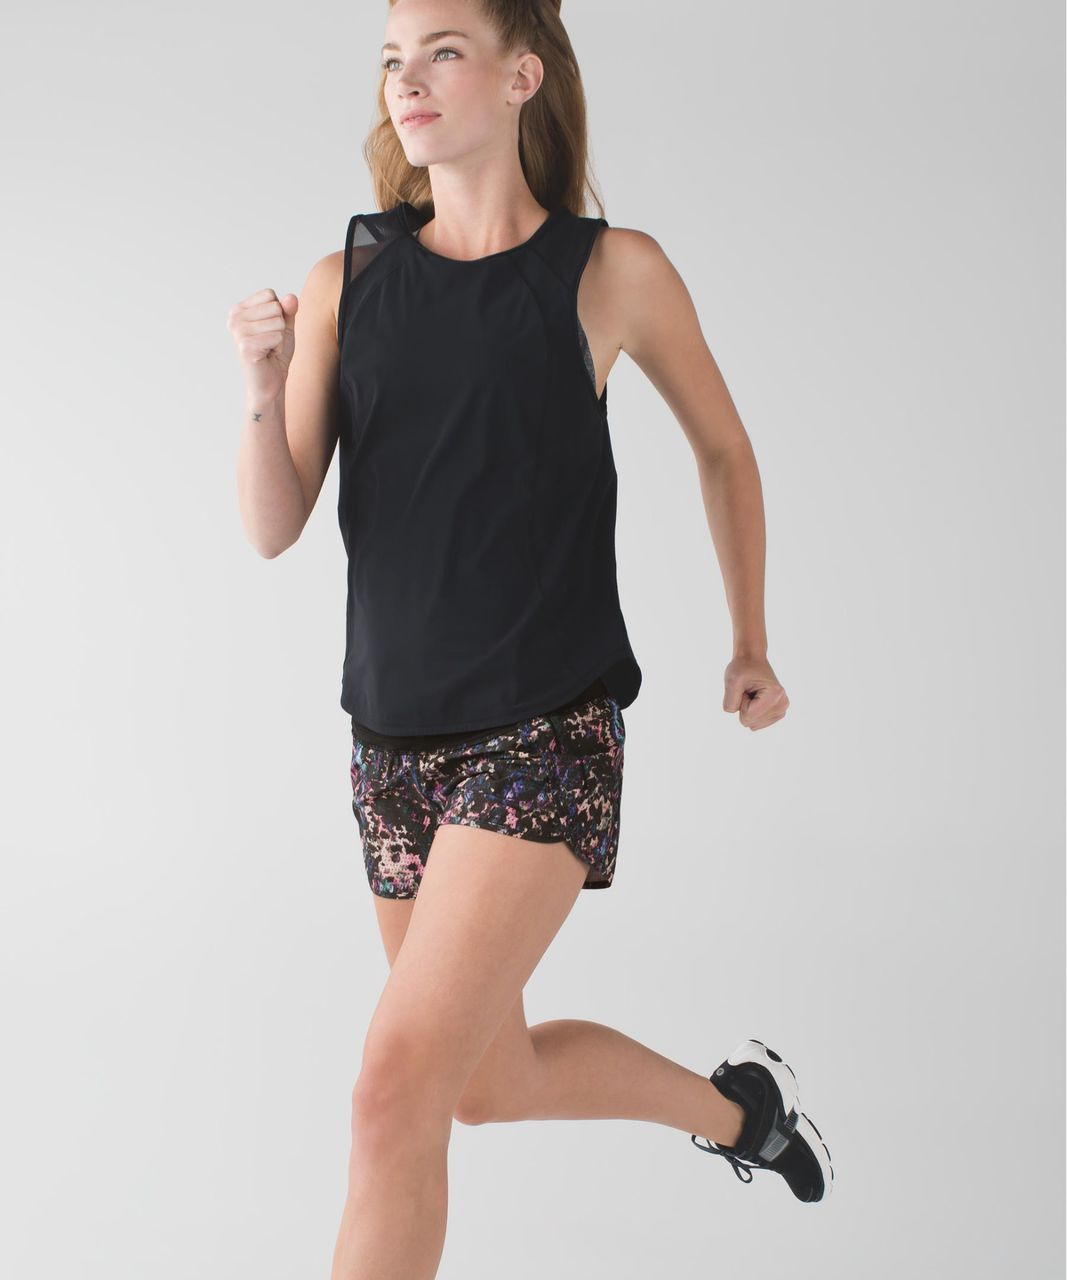 Lululemon Run Times Short *4-way Stretch - Floral Sport Black Multi / Black